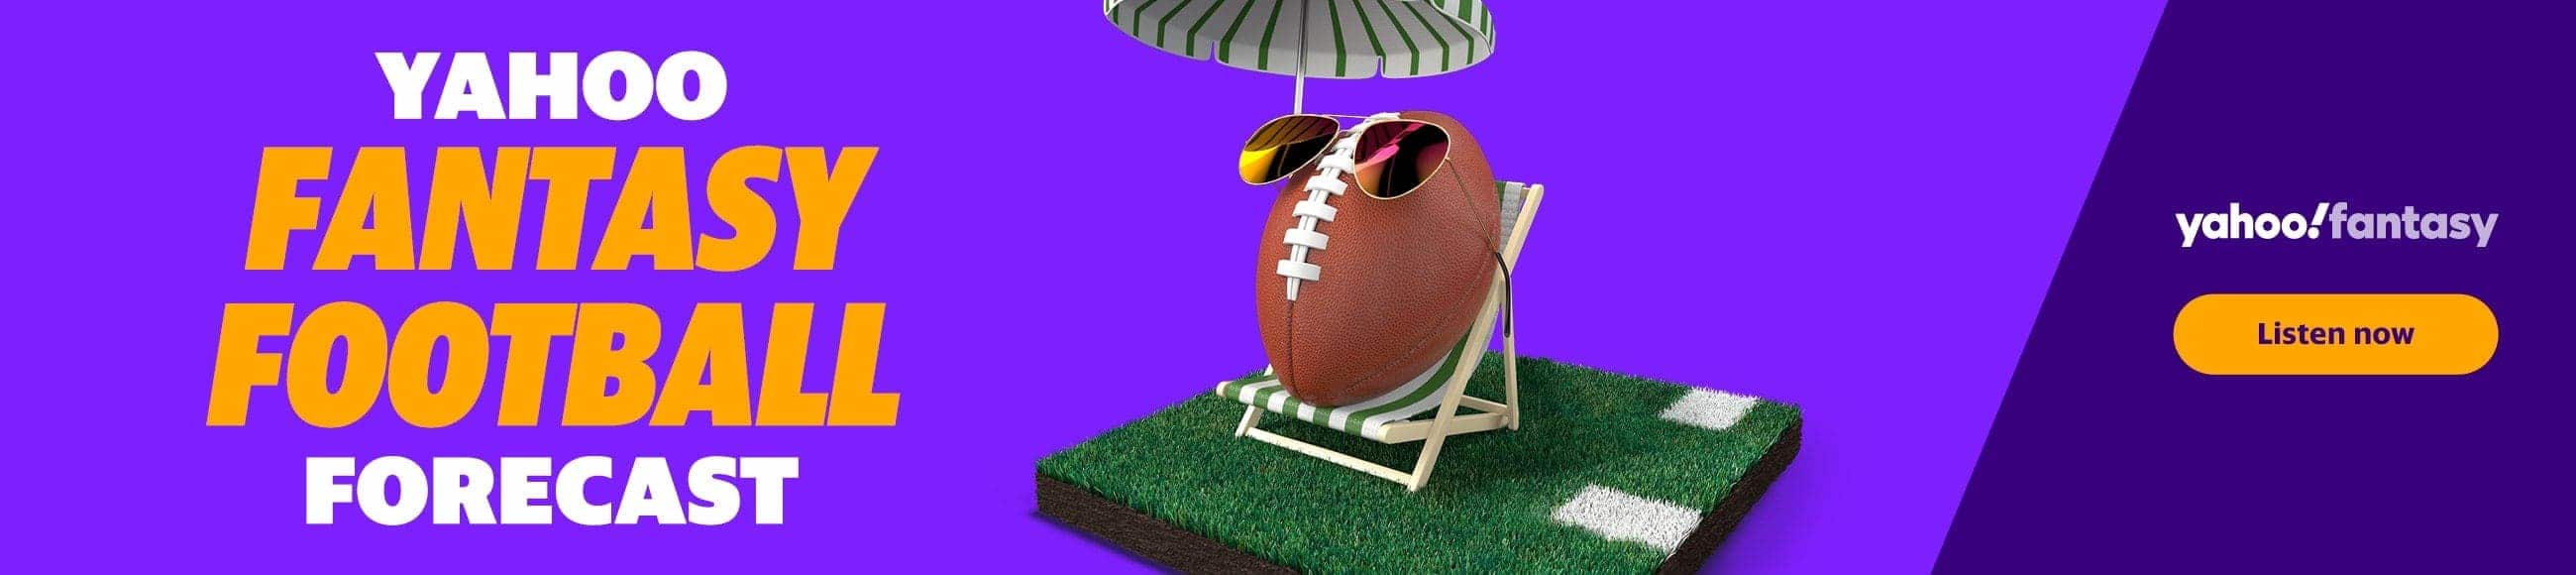 Research Overview Fantasy Football Yahoo Sports